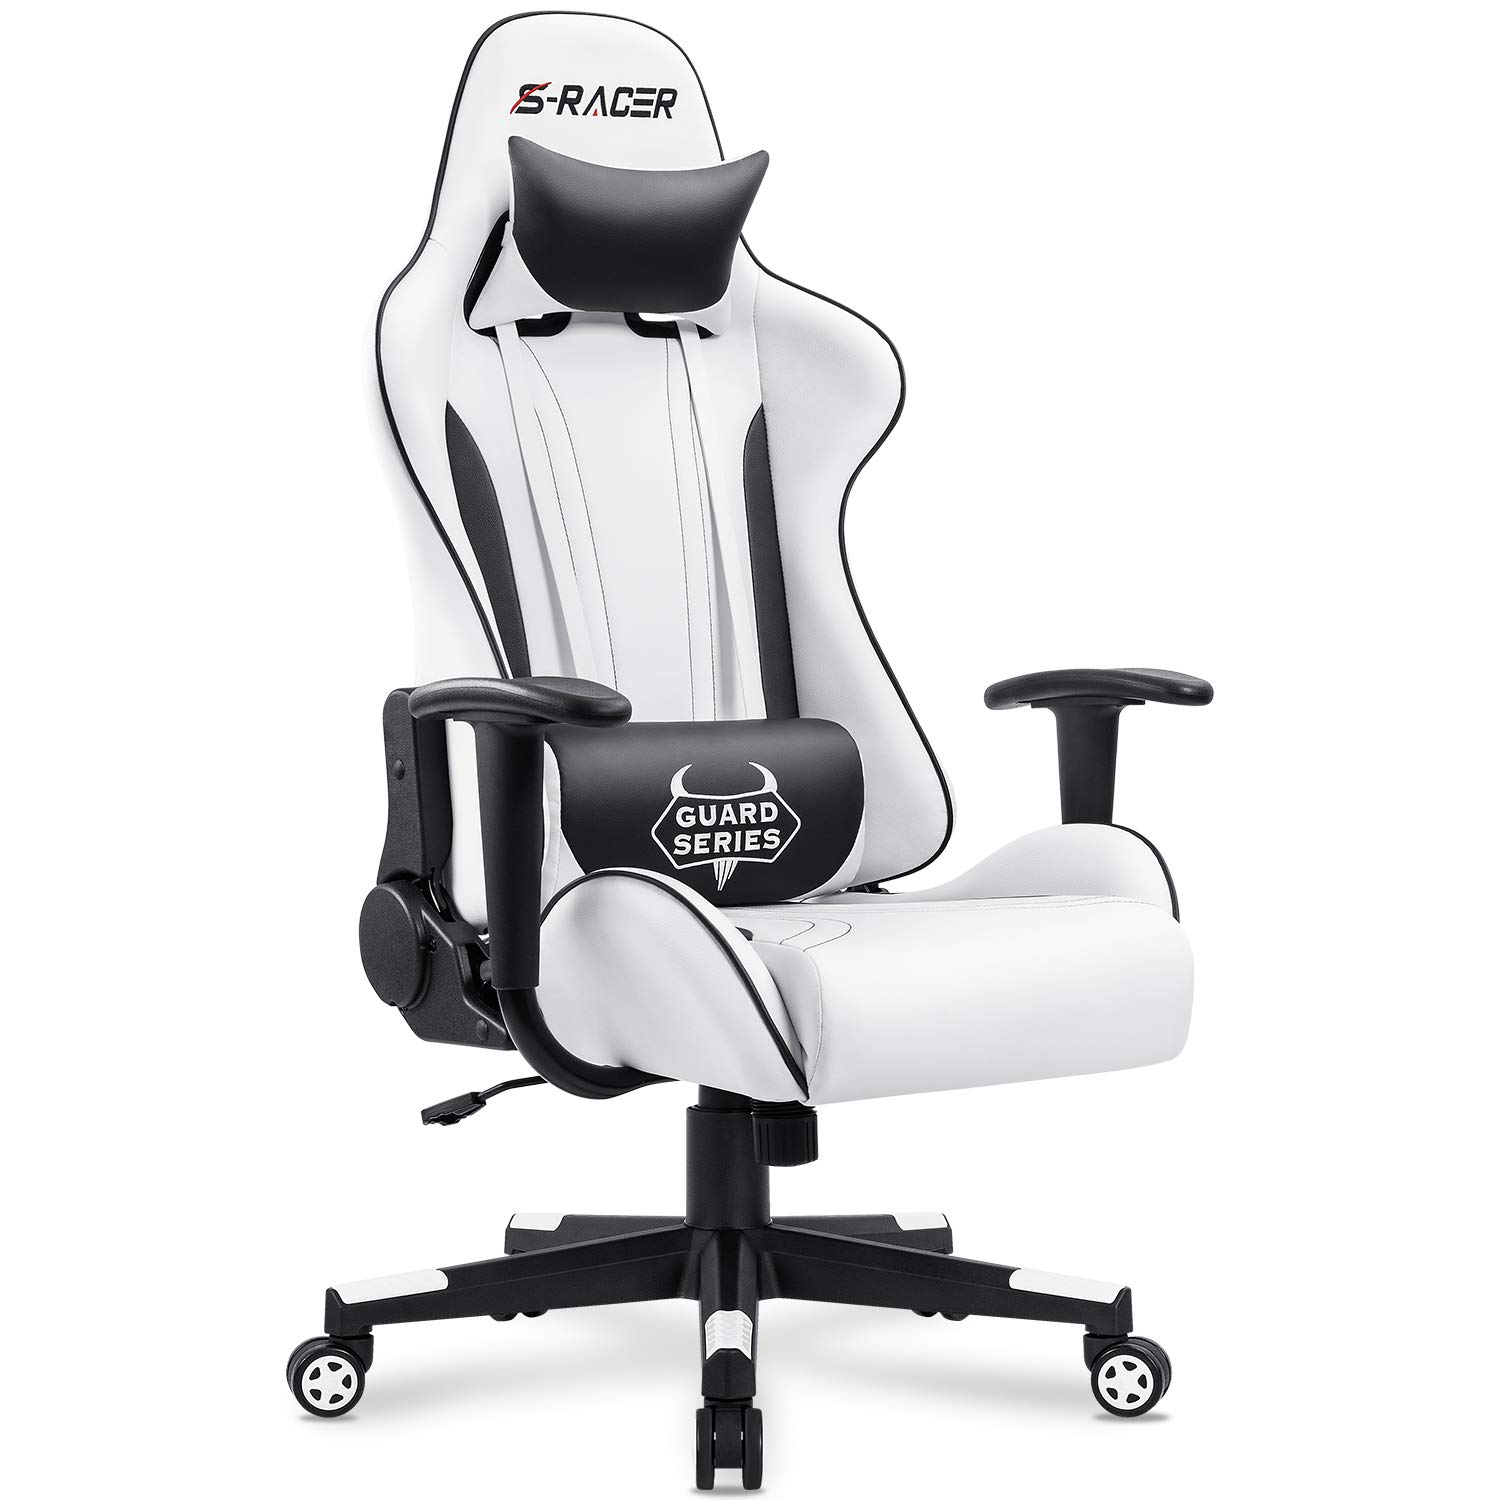 Homall Gaming Chair Office Chair High Back Racing Computer Desk Chair PU Leather Chair Executive and Ergonomic Swivel Chair with Headrest and Lumbar Support (White) by Homall